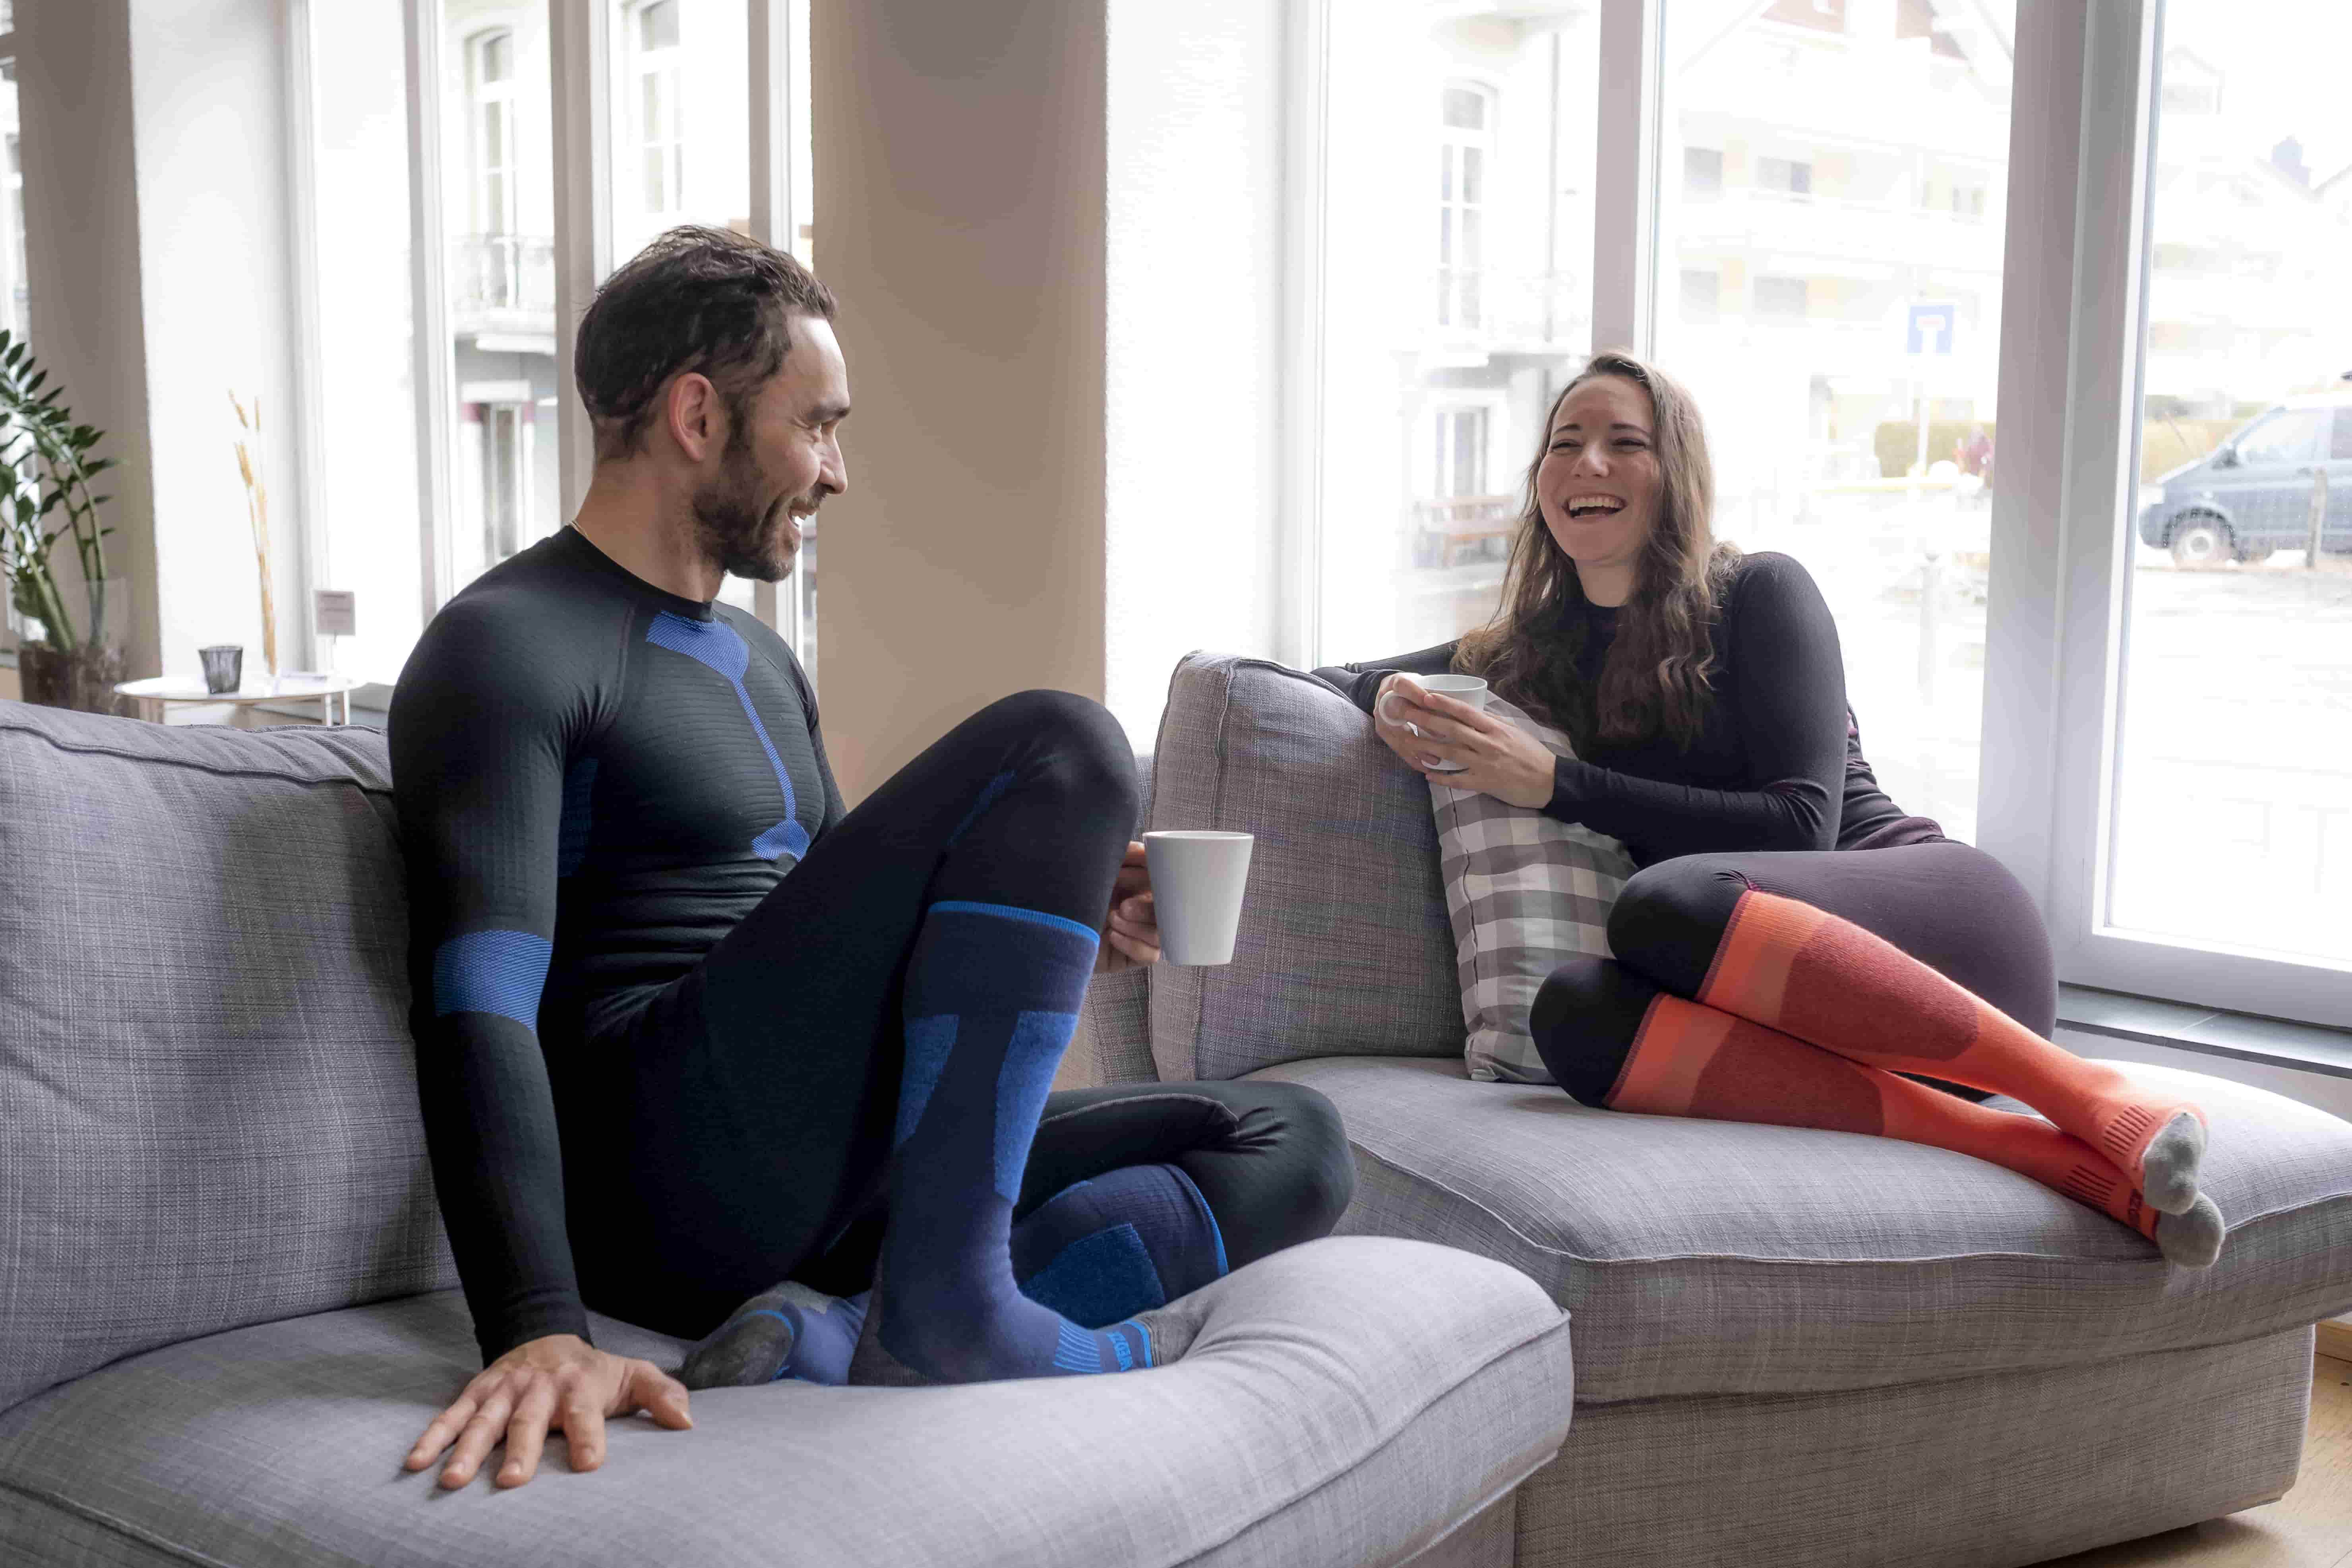 Winter Thermal Wears to Keep Your Loved One Warm